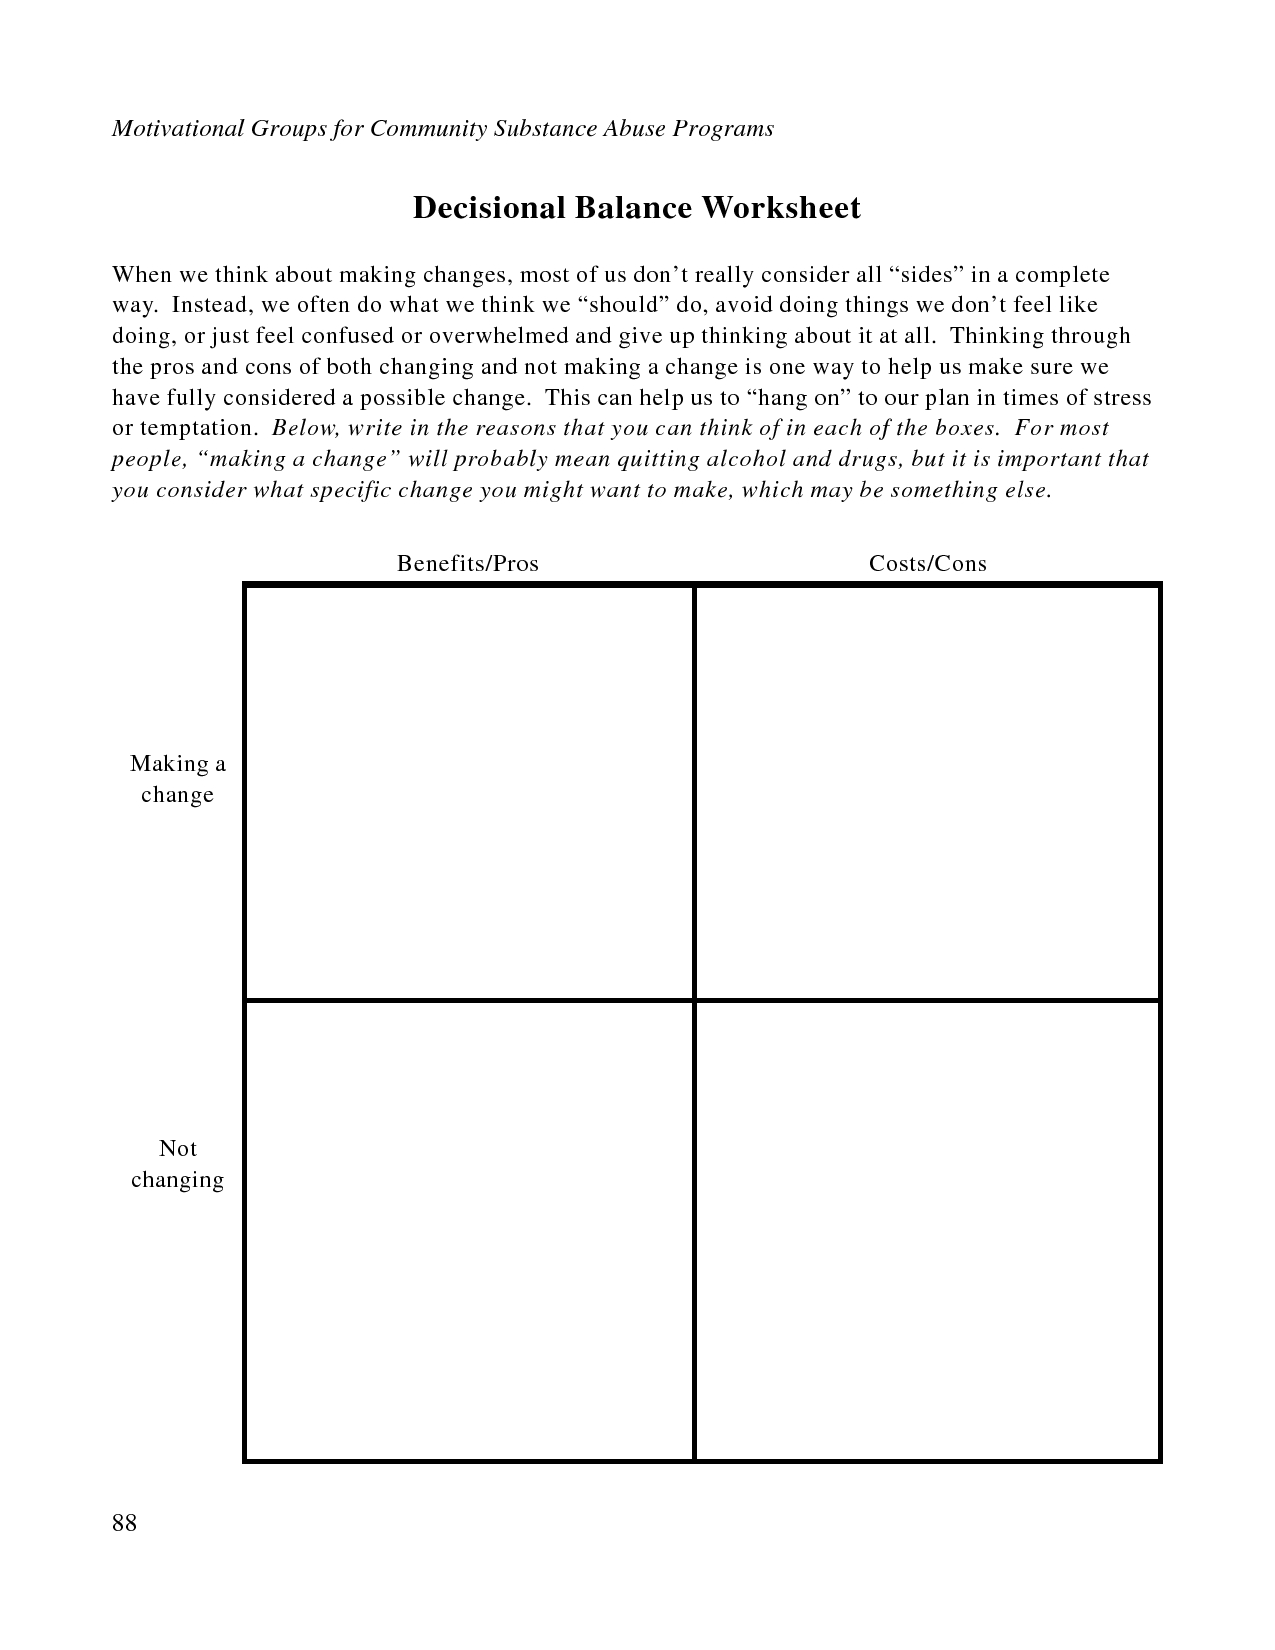 Free Printable Dbt Worksheets | Decisional Balance Worksheet - Pdf - Free Printable Making Change Worksheets